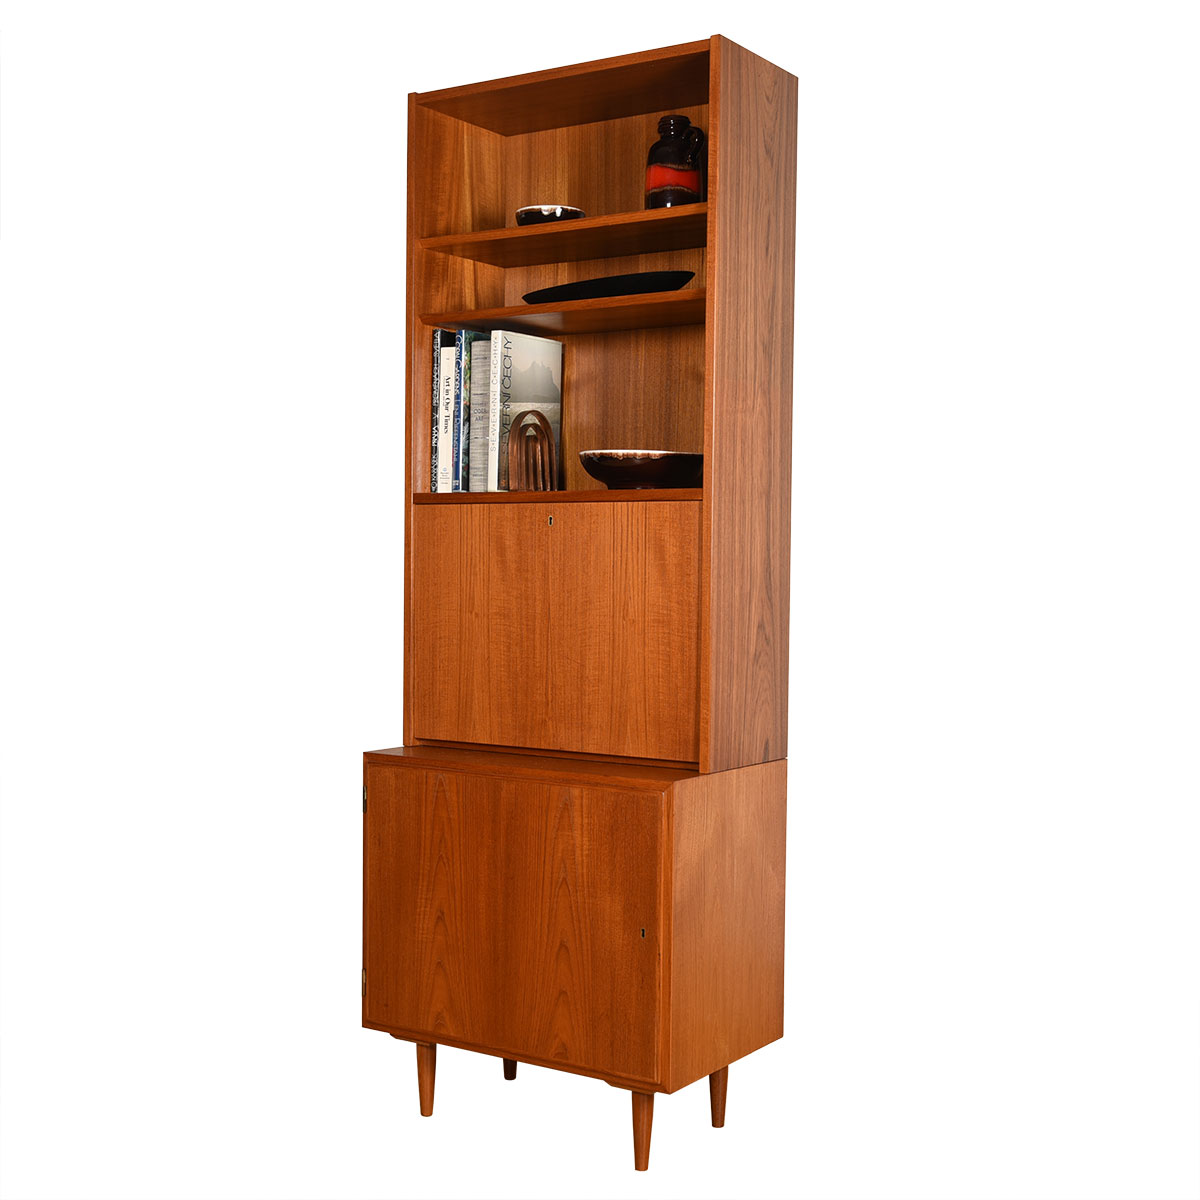 Studio-Sized 28″ Locking Cabinet + Secretary Bookcase Top in Danish Teak